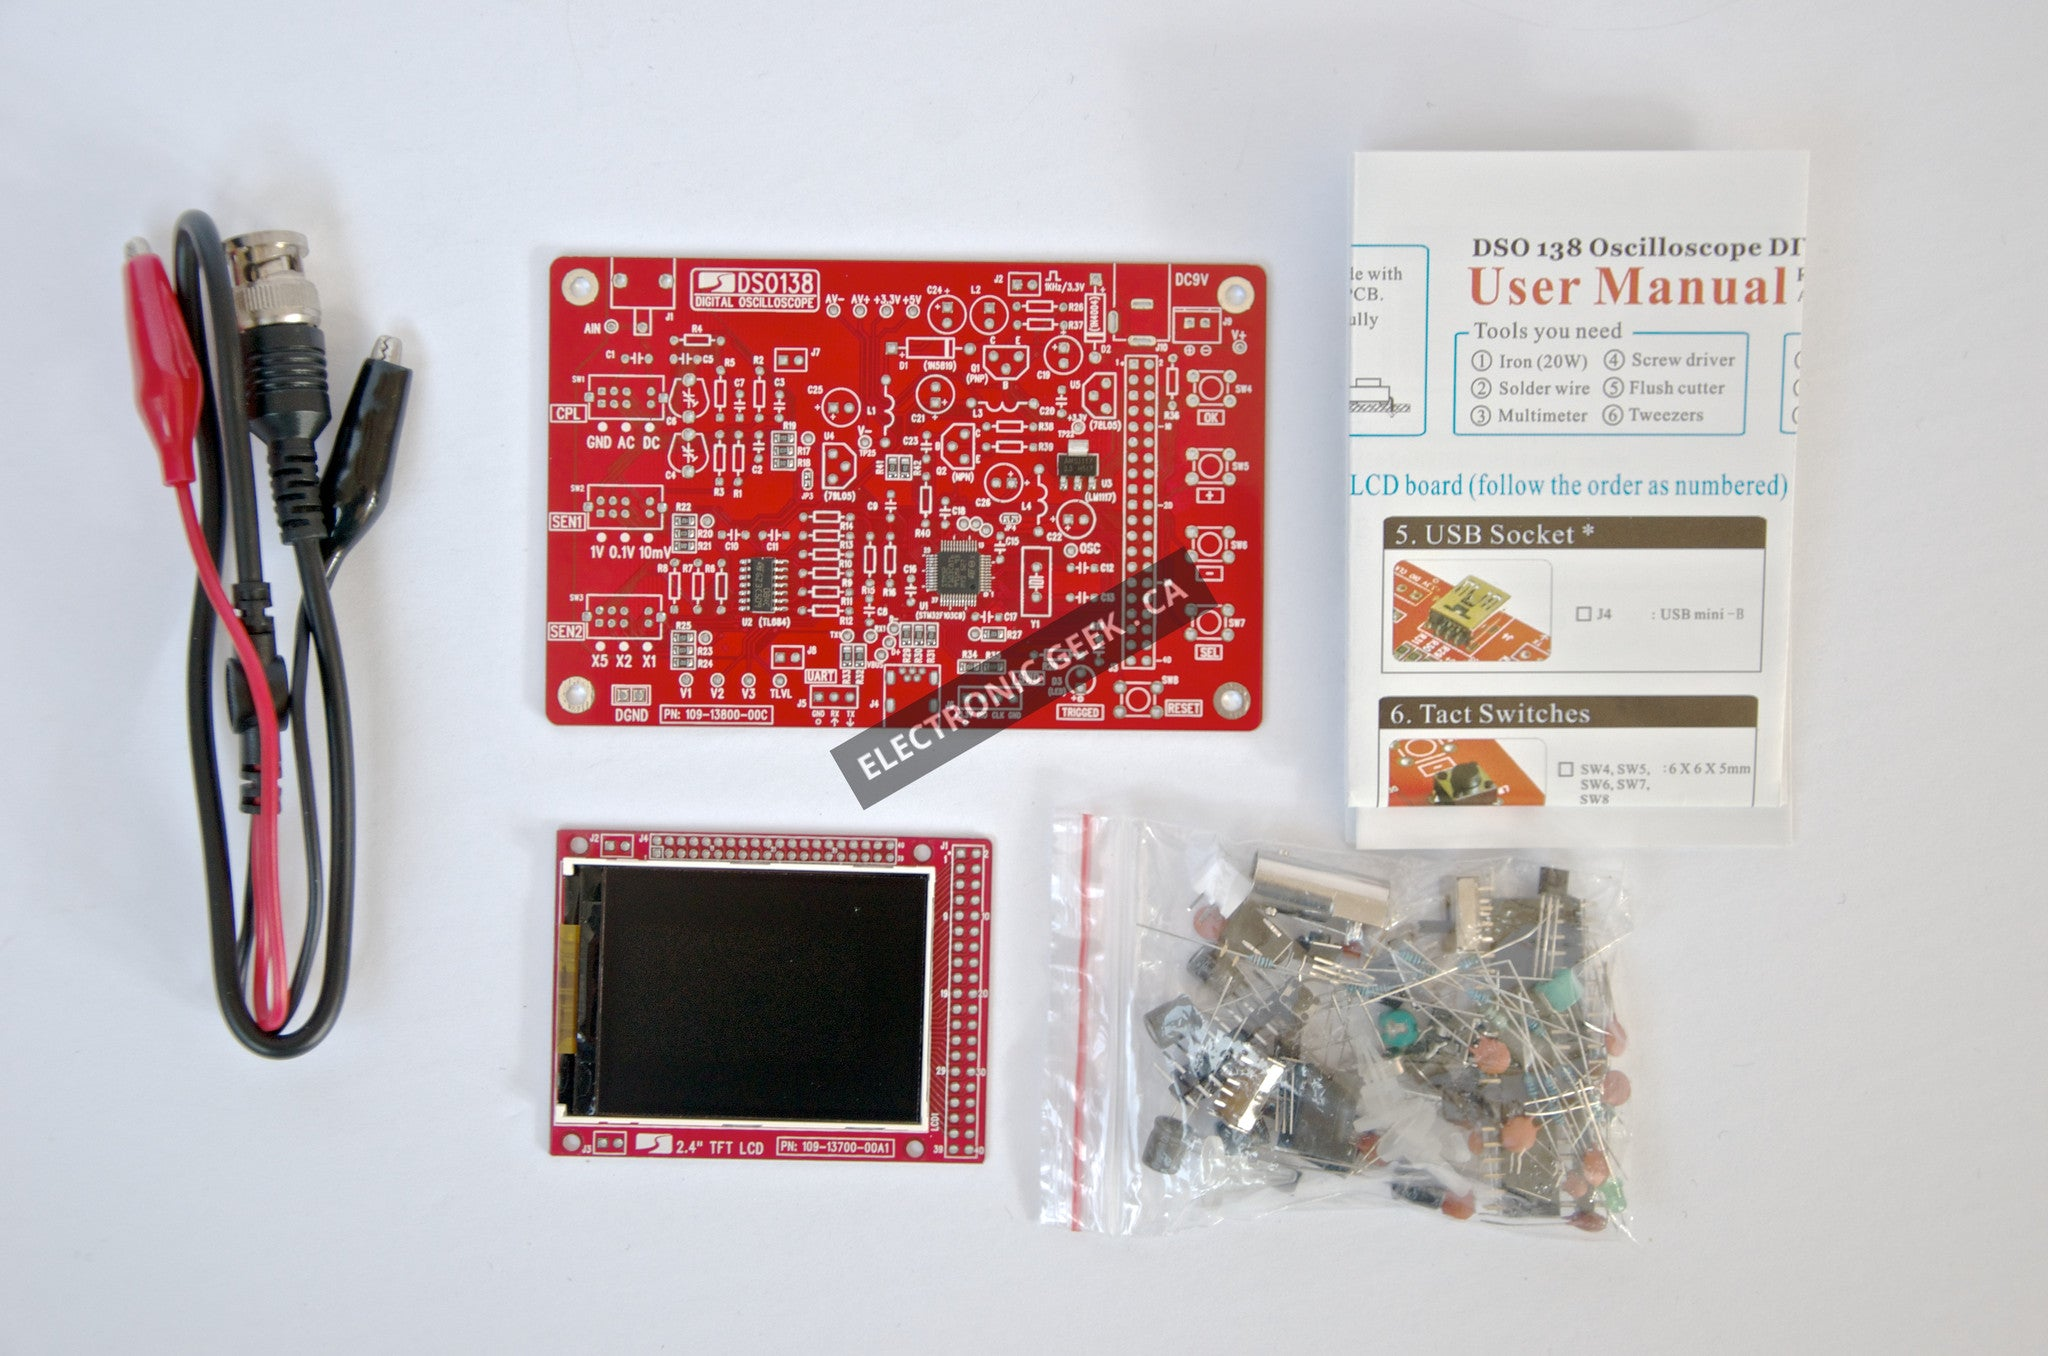 DSO138 2 4in TFT Digital Oscilloscope Kit DIY Parts Electronic Learning Set